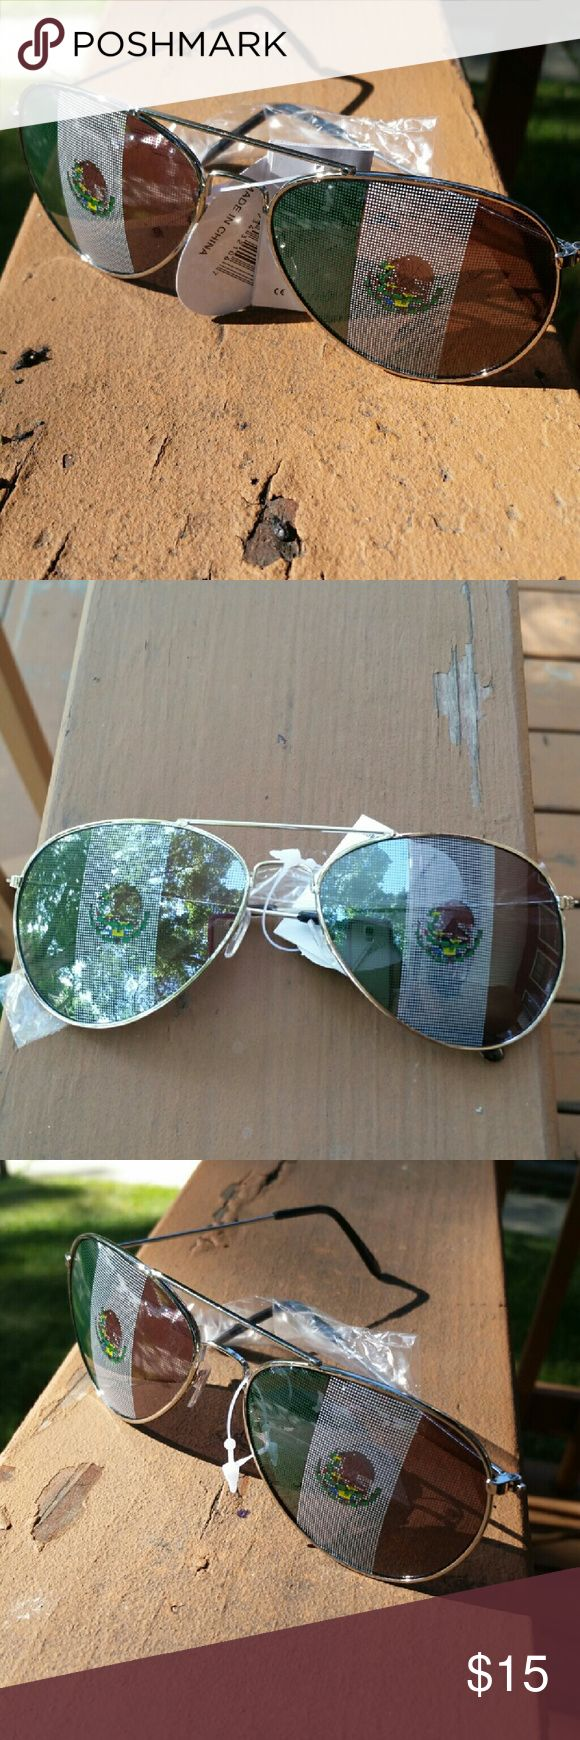 Mexican Flag Sunglasses Mens or Ladies Mexican Flag Sunglasses Other